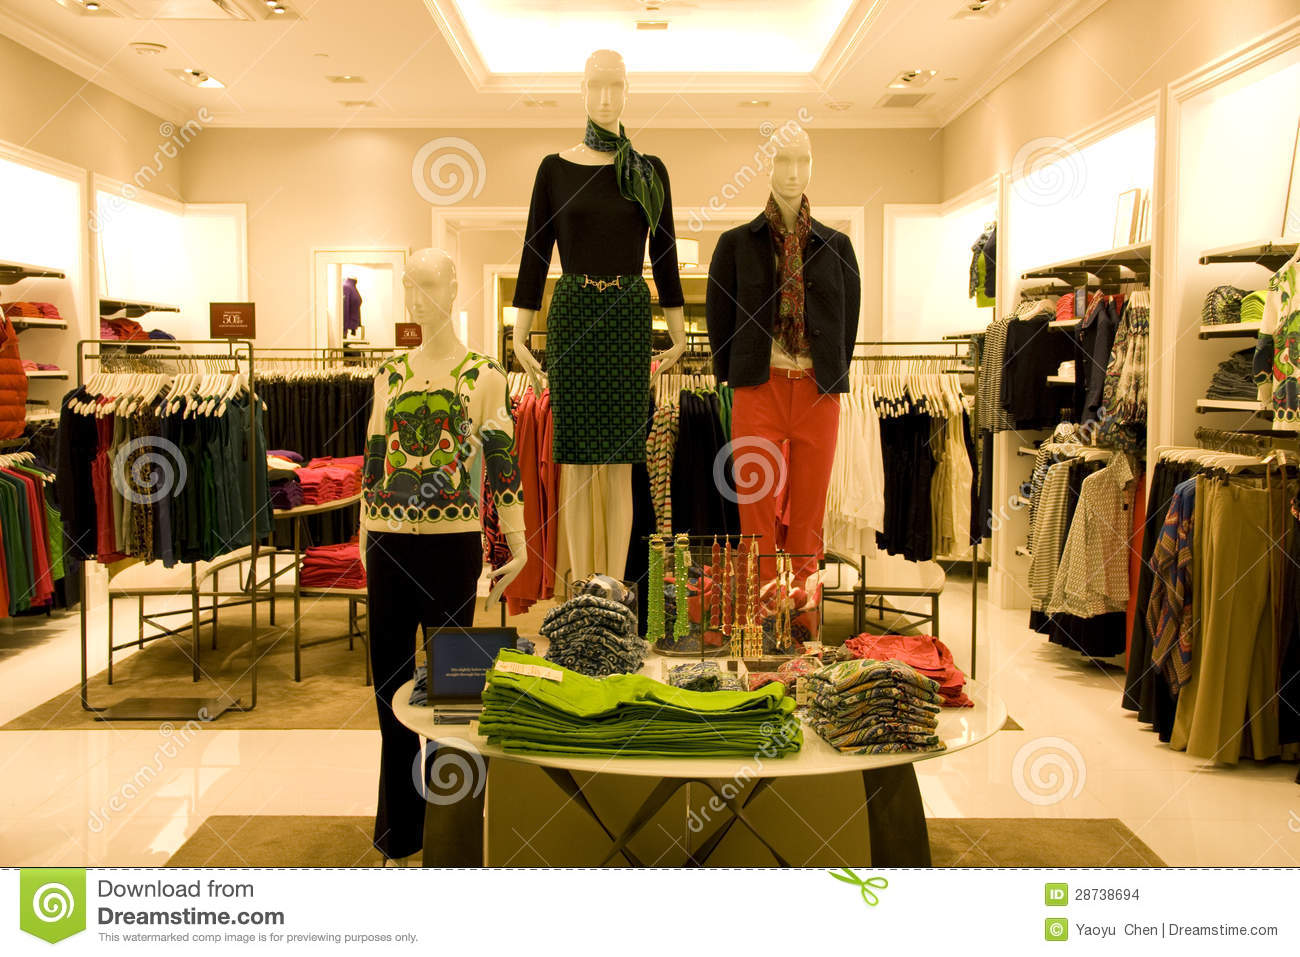 Buyer for clothing stores